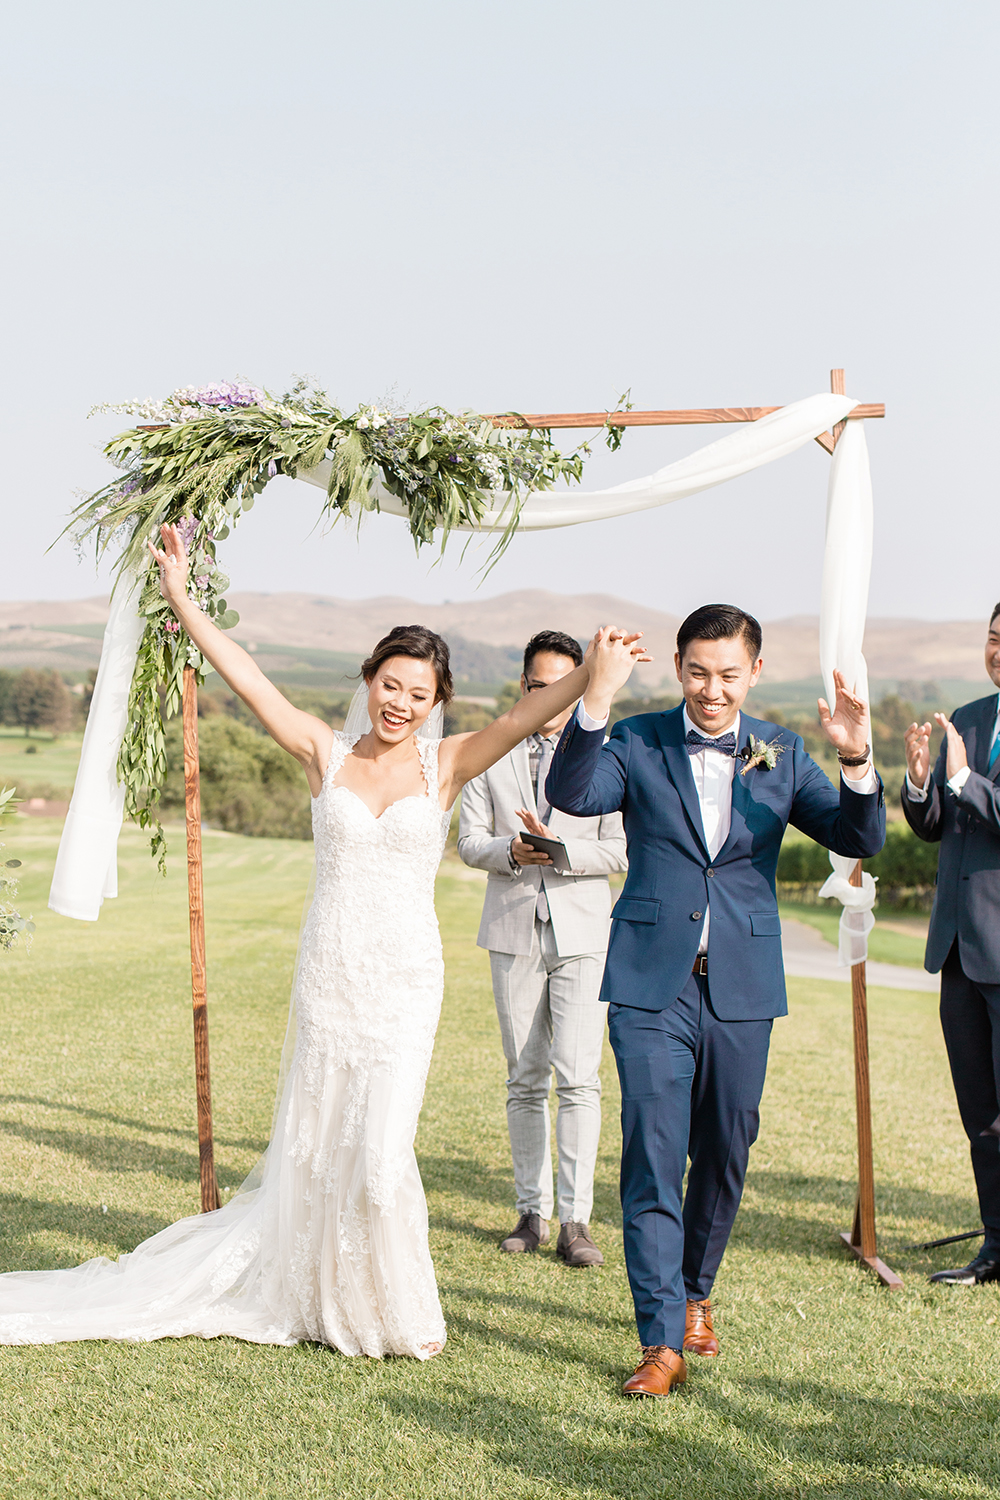 wedding photography of happy bride and groom at eagle vines golf club in napa california